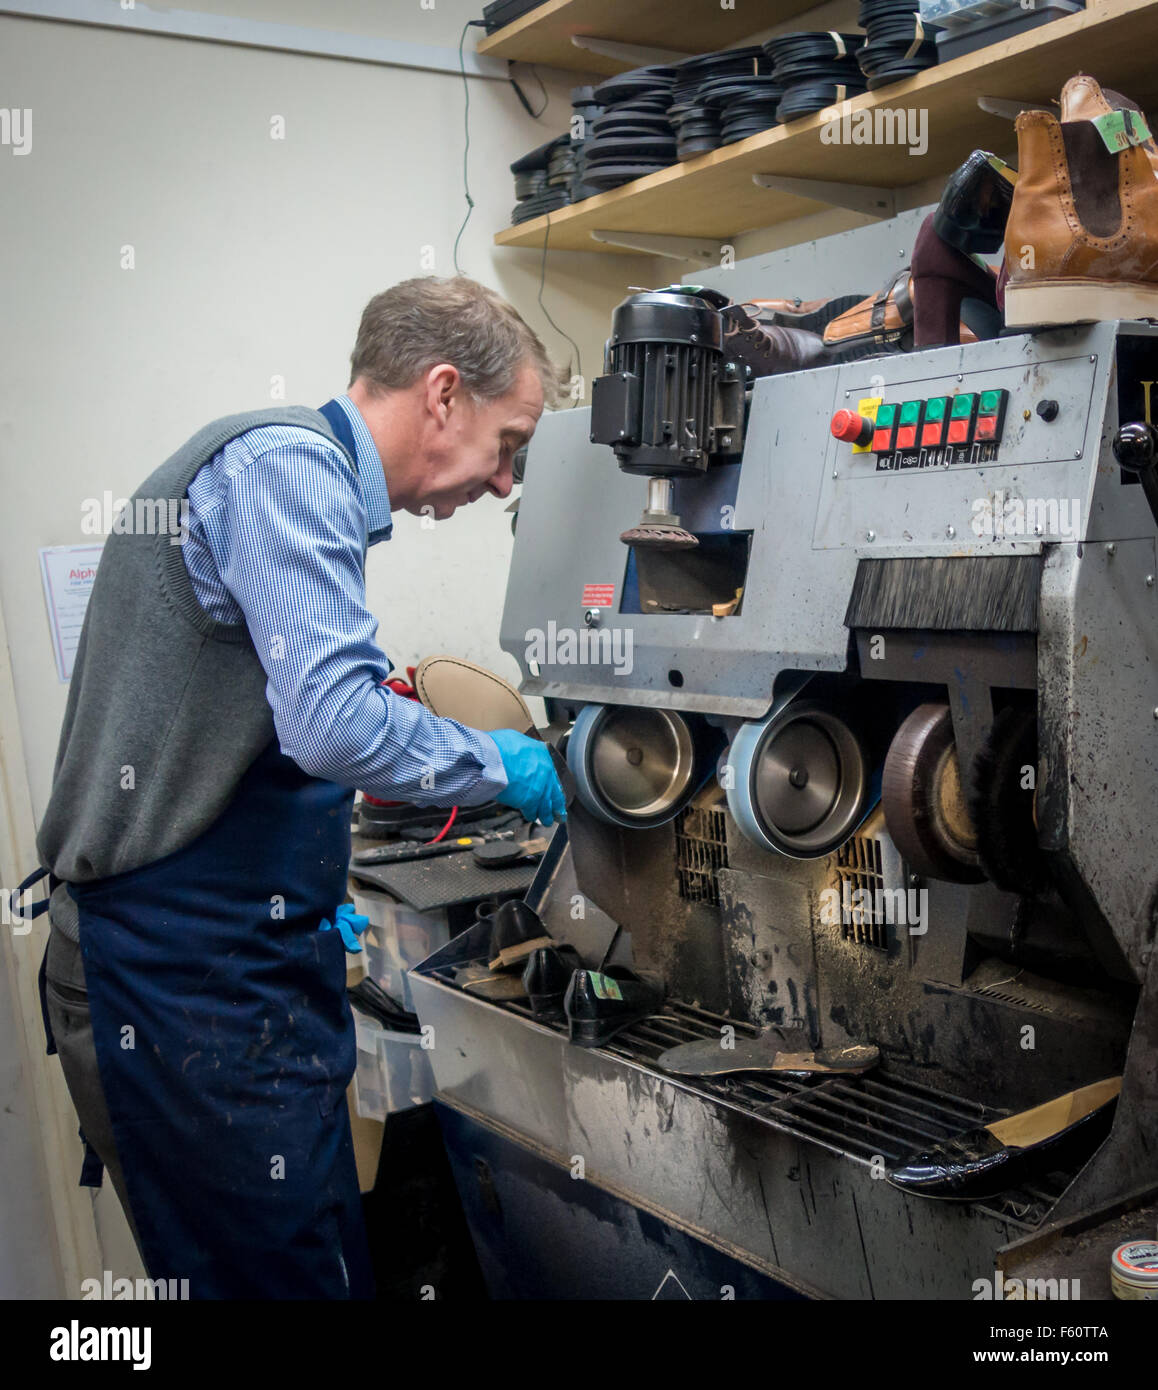 Man mending a pair of shoes at a machine Stock Photo